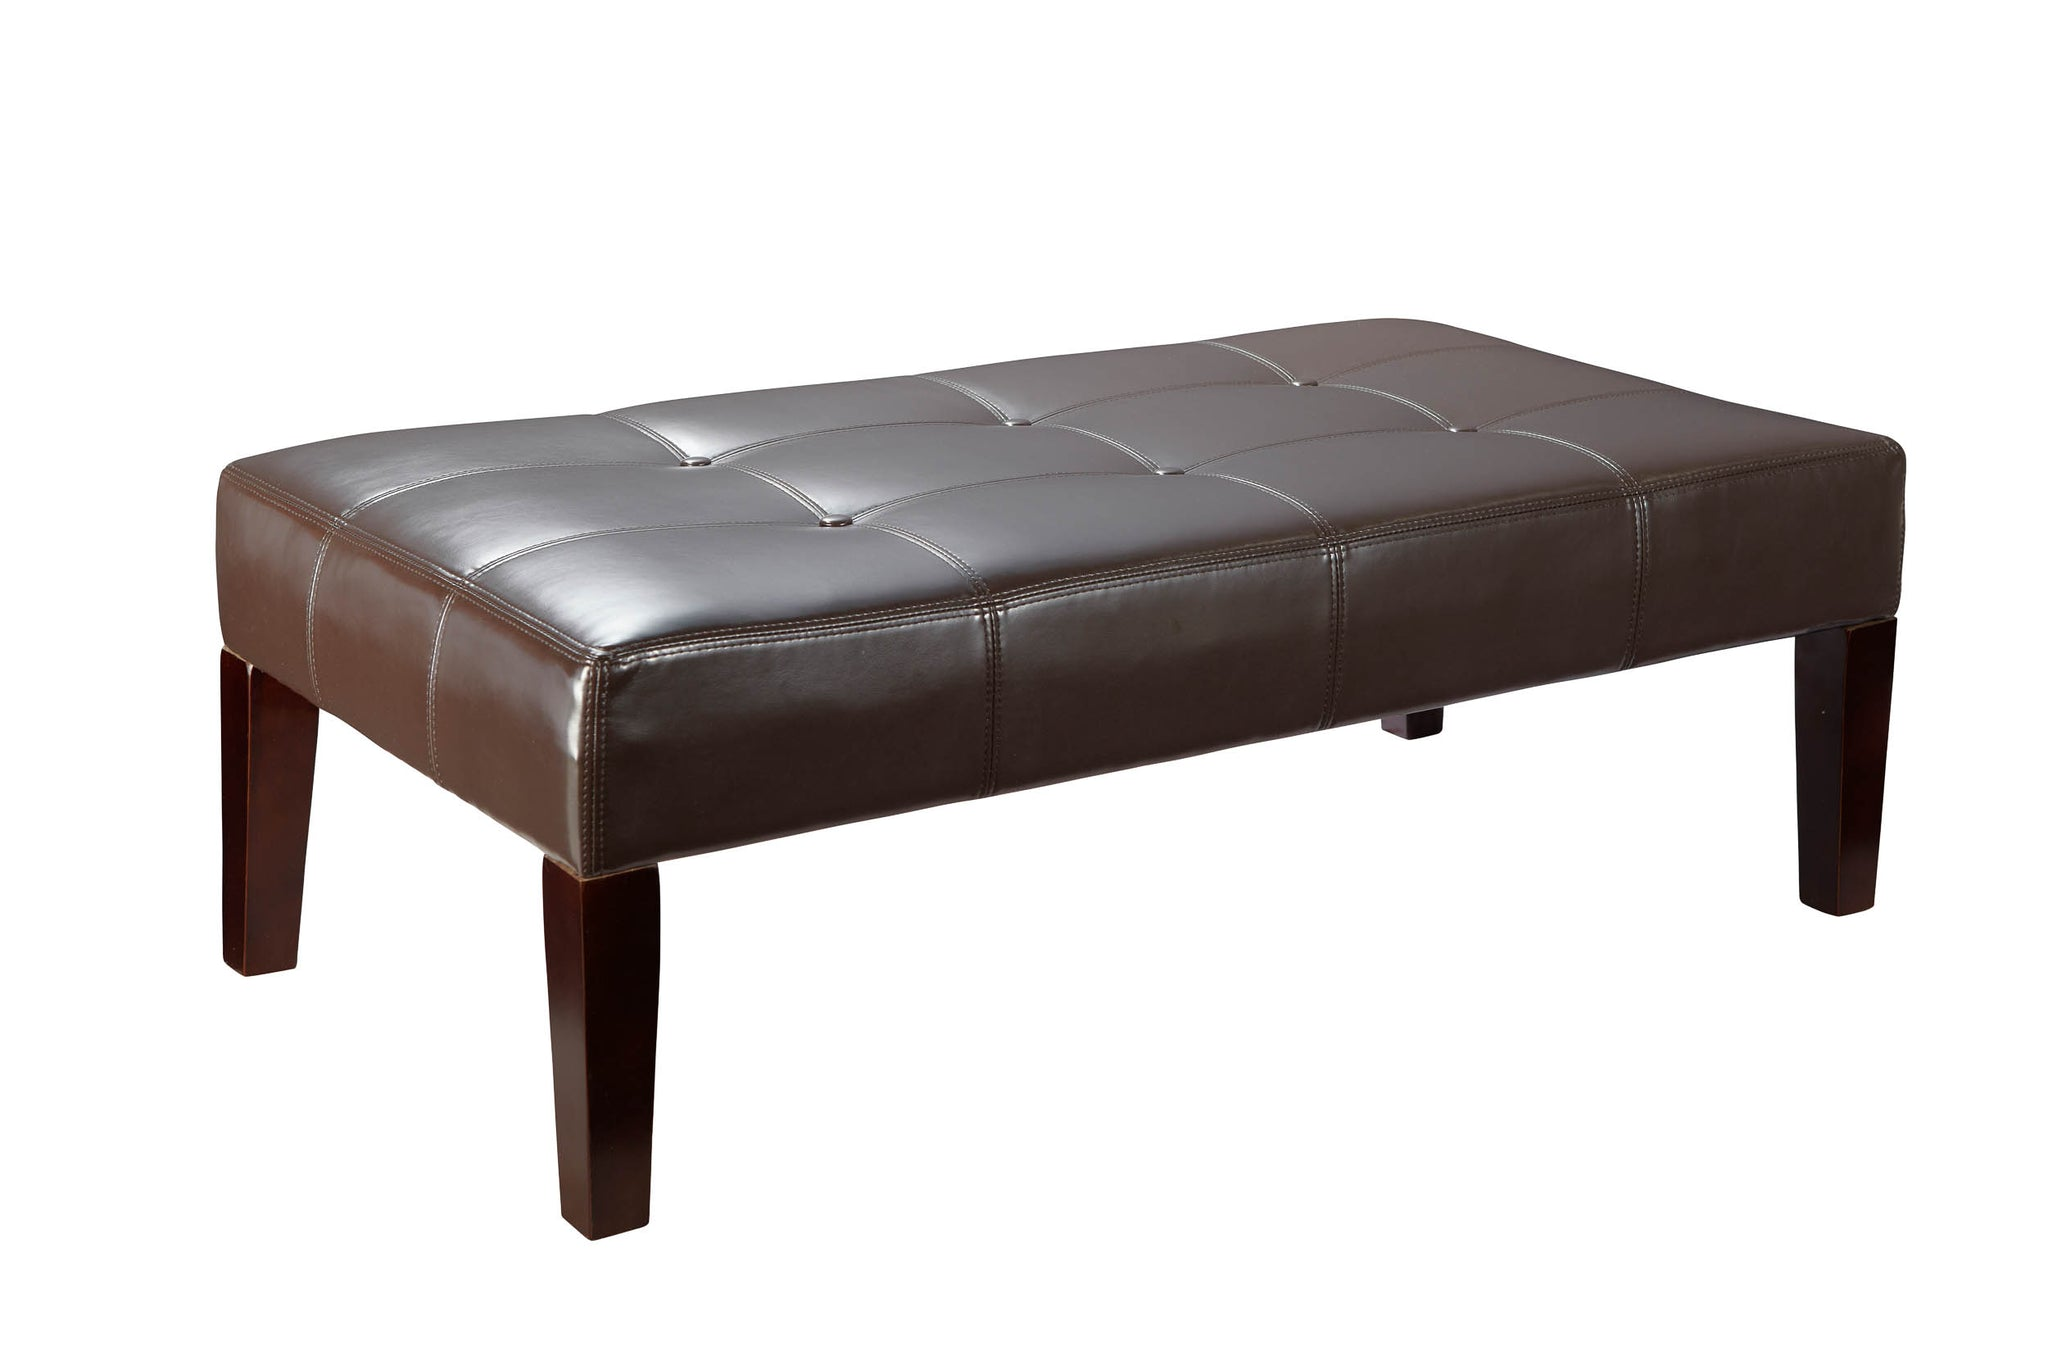 table ottoman modern living charming idea for rectangular room ikea coffee leather your black tufed decor